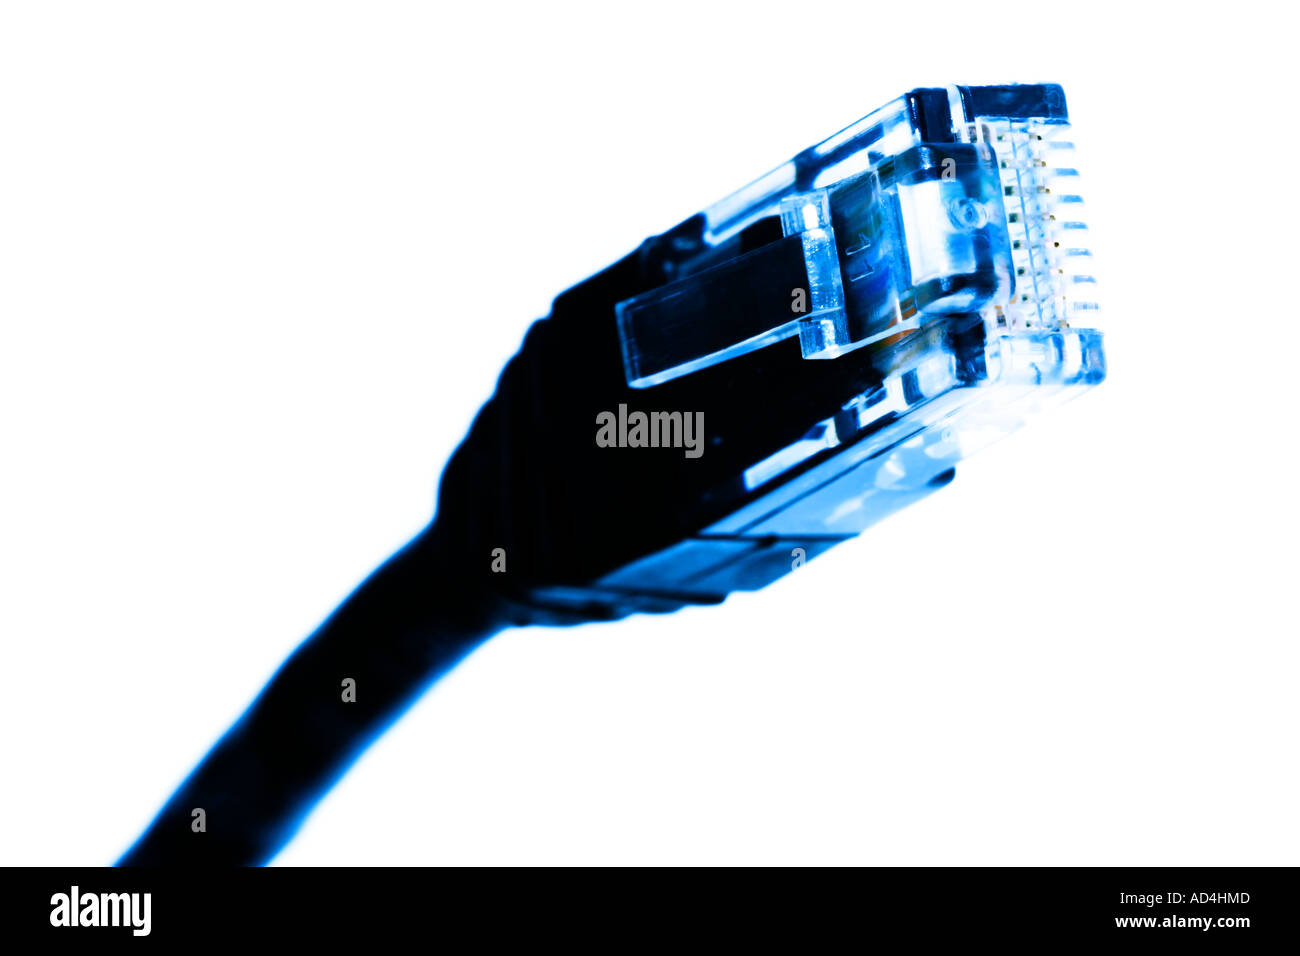 Network cable - Stock Image